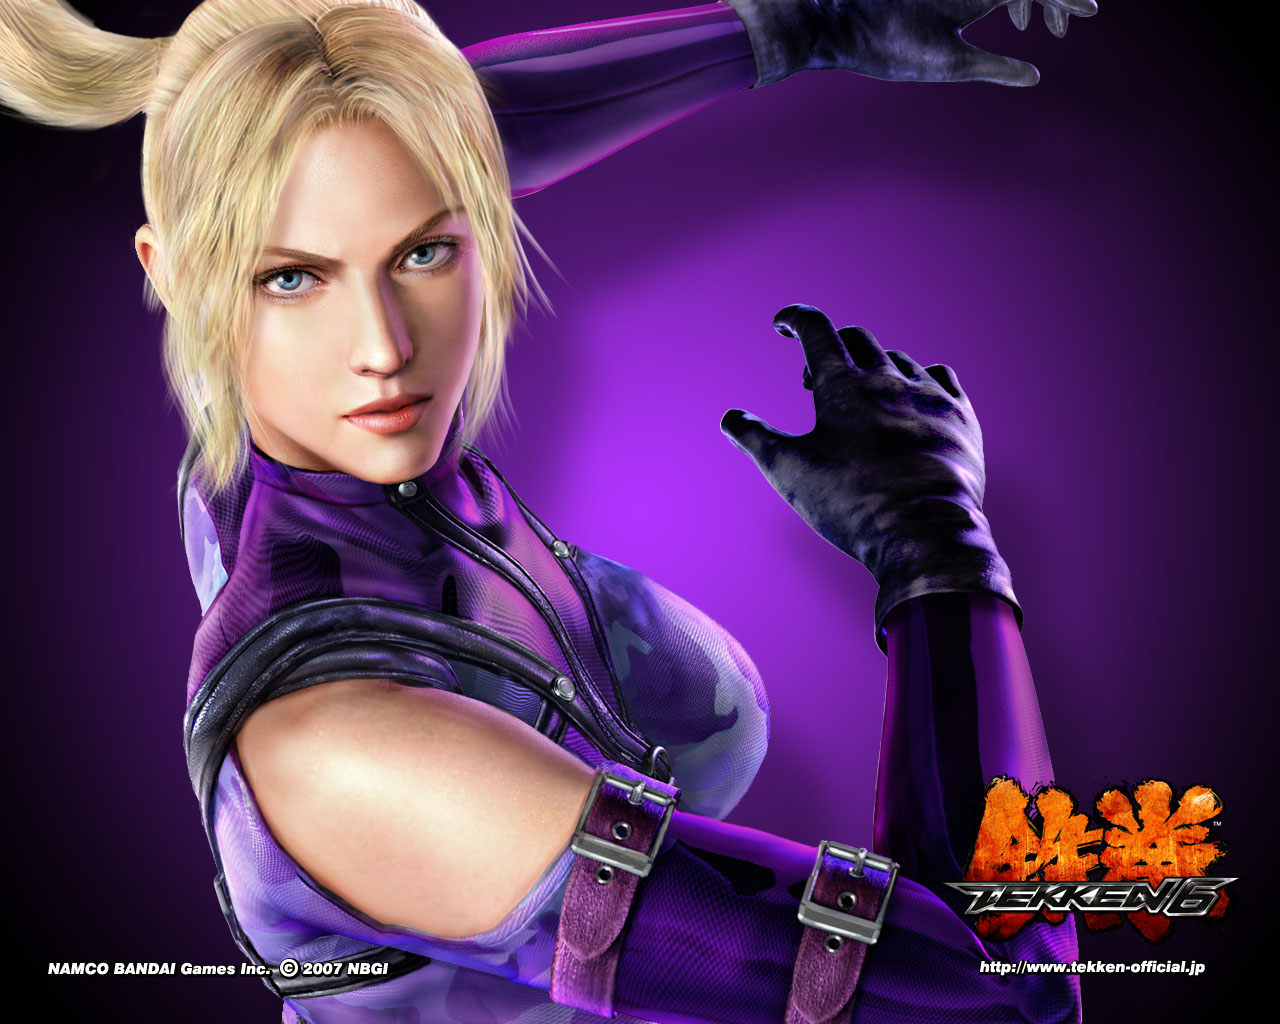 Tekken 6 Hd Wallpaper Free Download Full HD Wallpaper